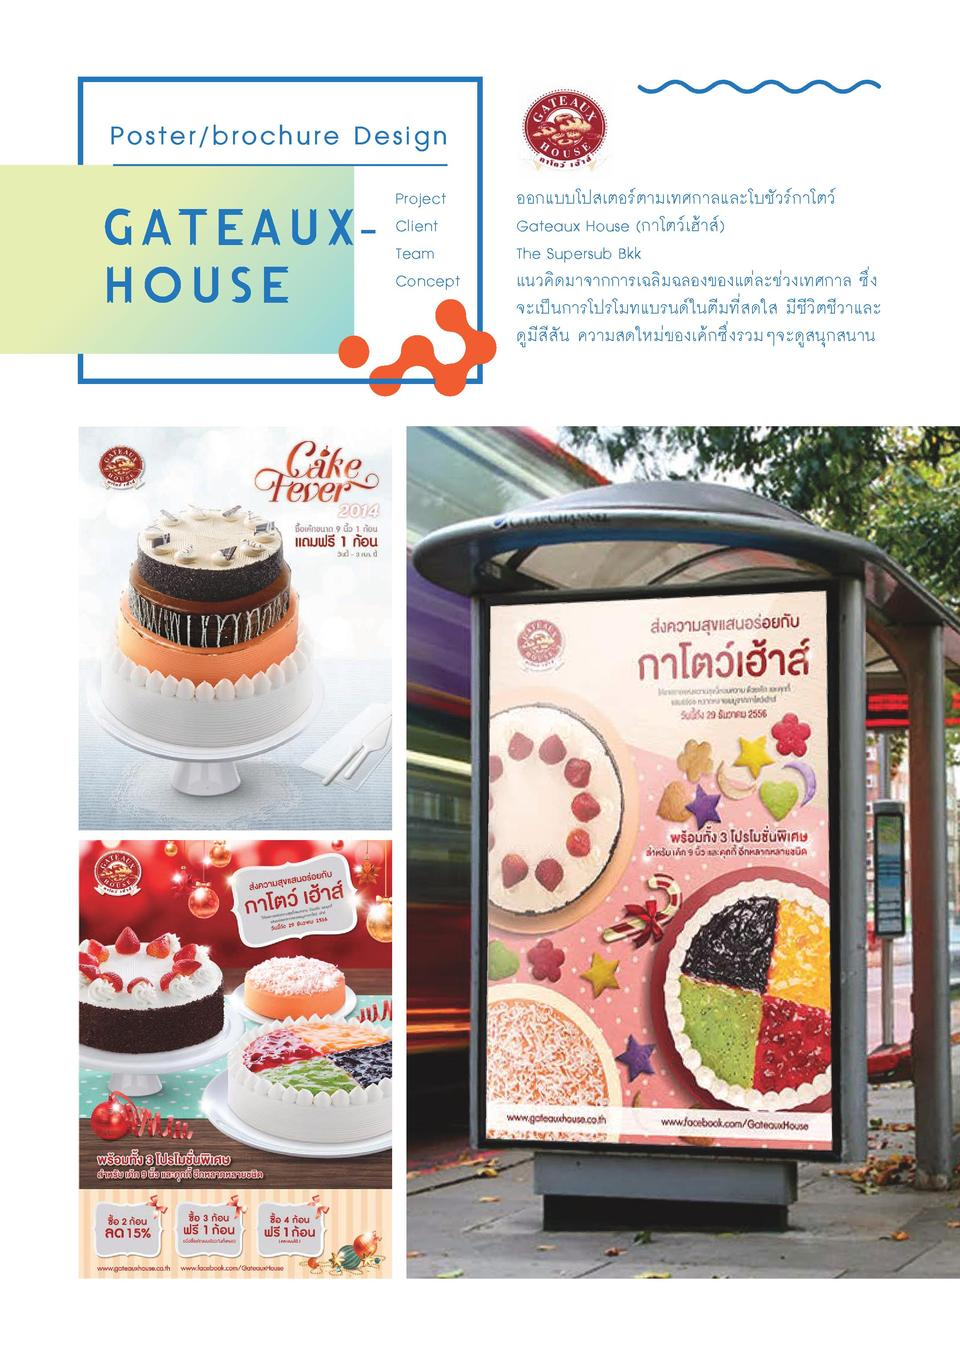 Poster brochure Design  gateauxhouse  Project Client Team Concept                                                         ...